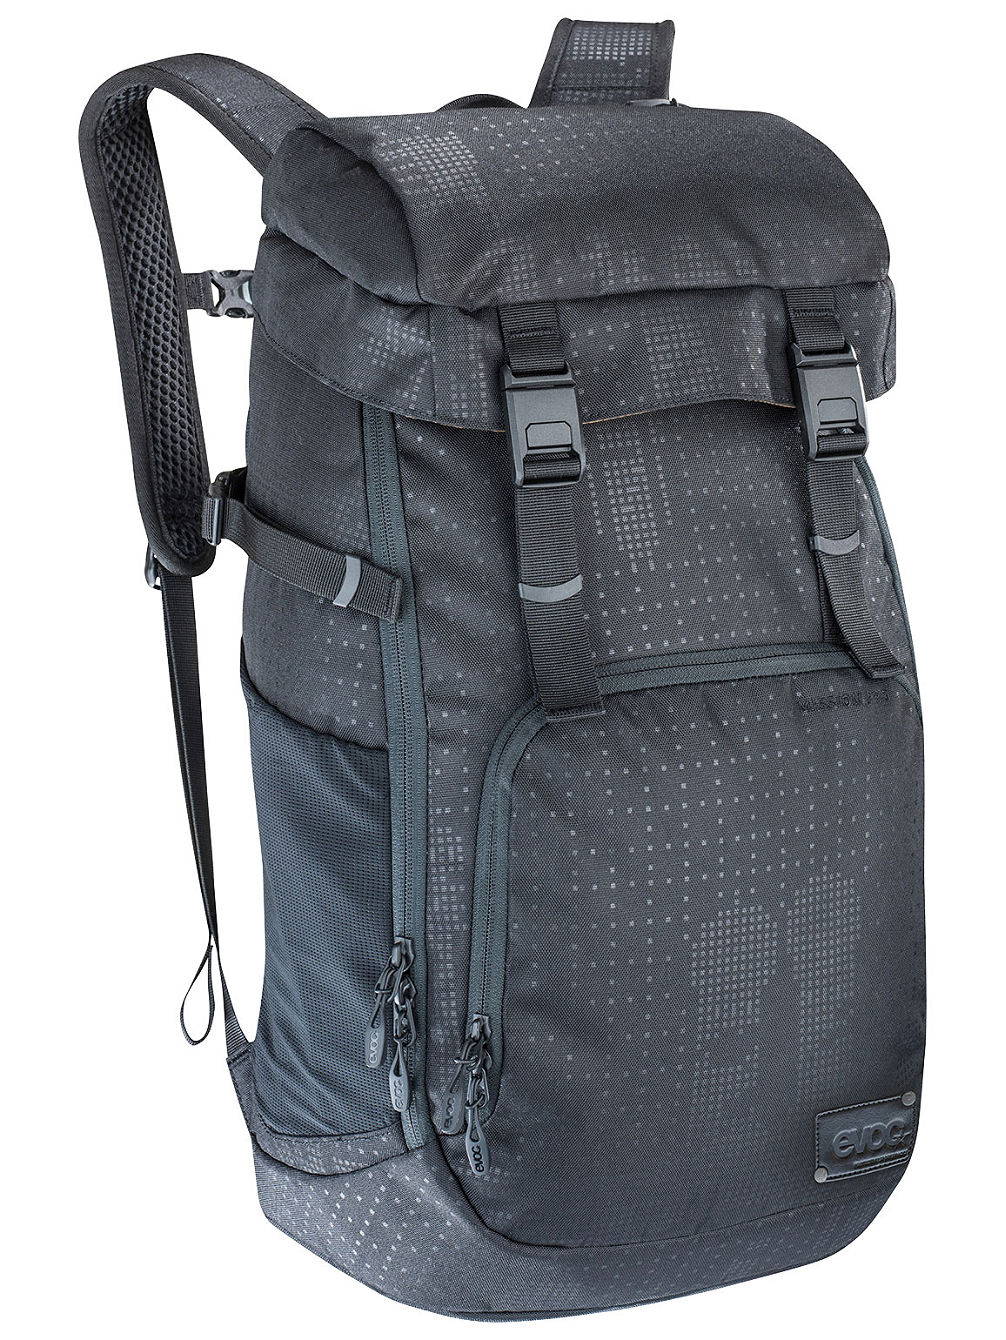 Mission Pro 28L Backpack